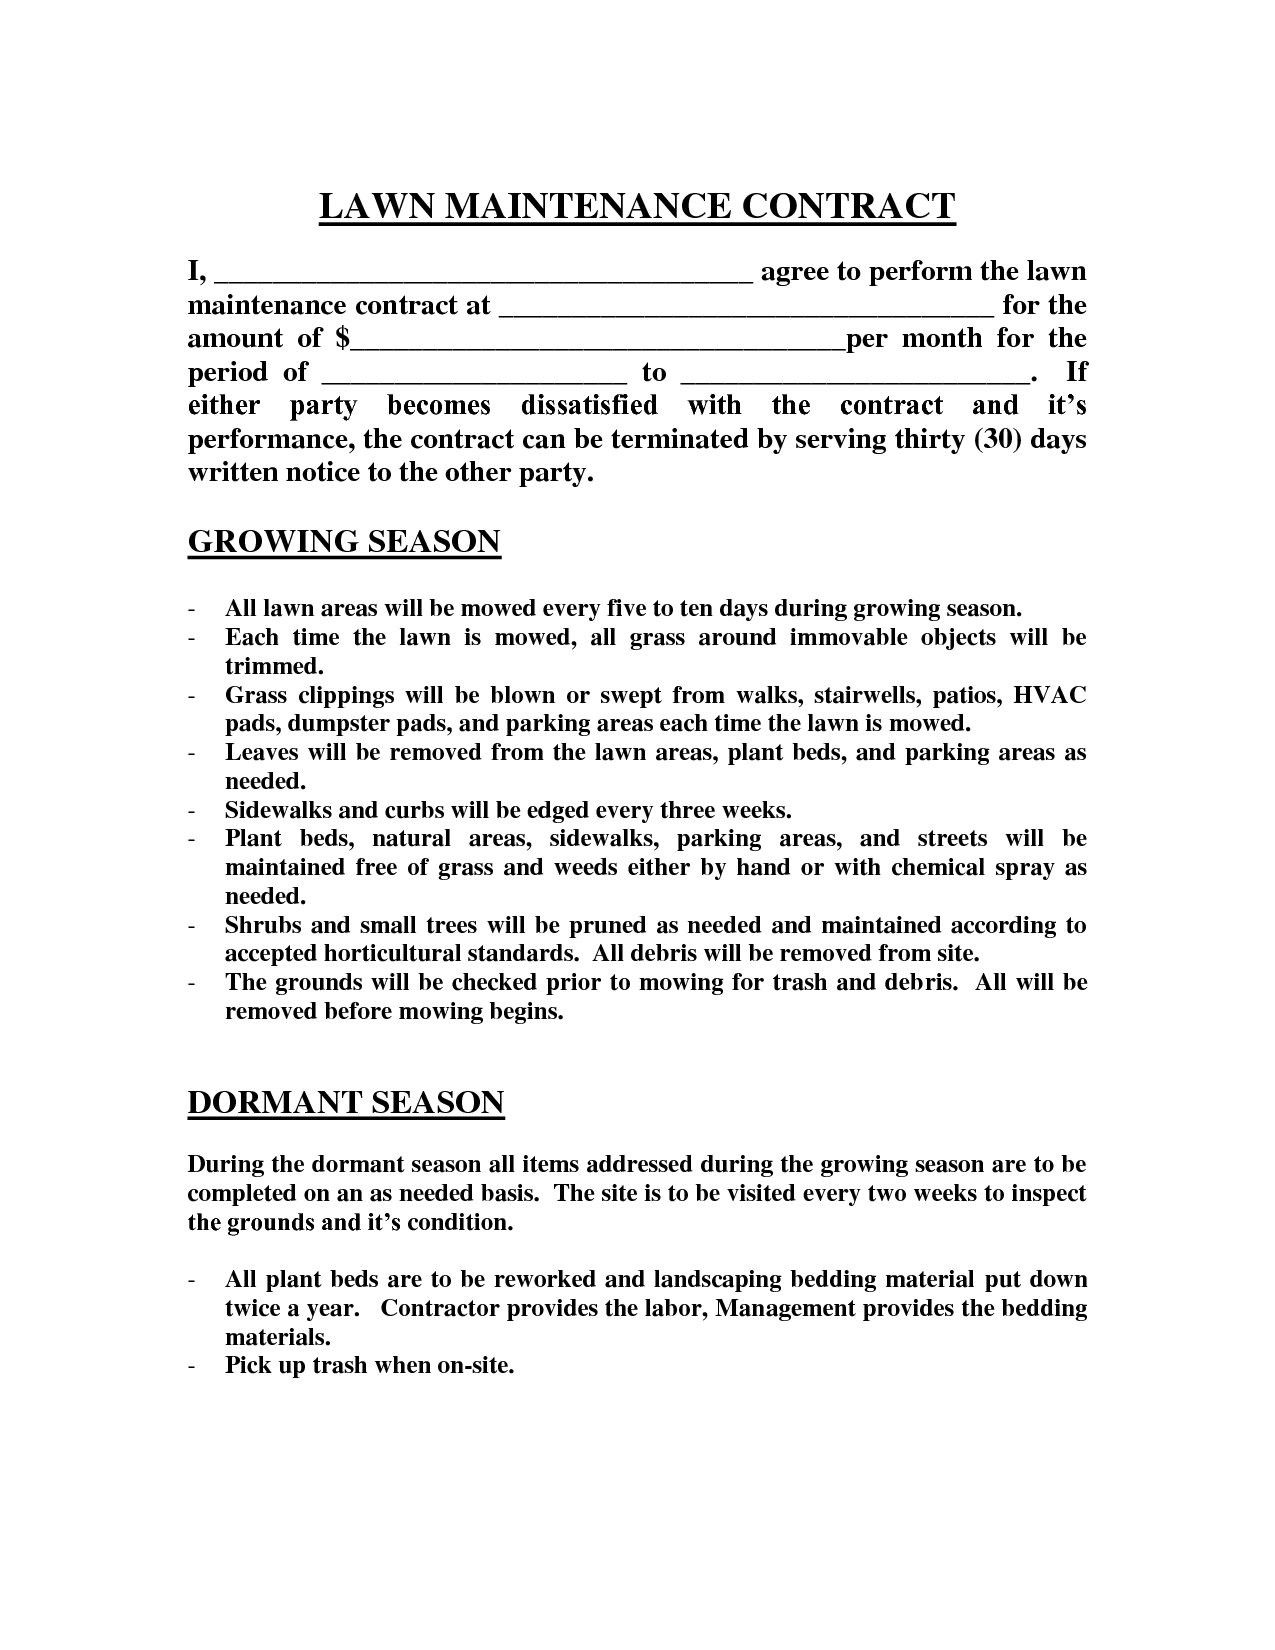 Lawn Maintenance Contract Images   Lawn Maintenance Contract Agreement